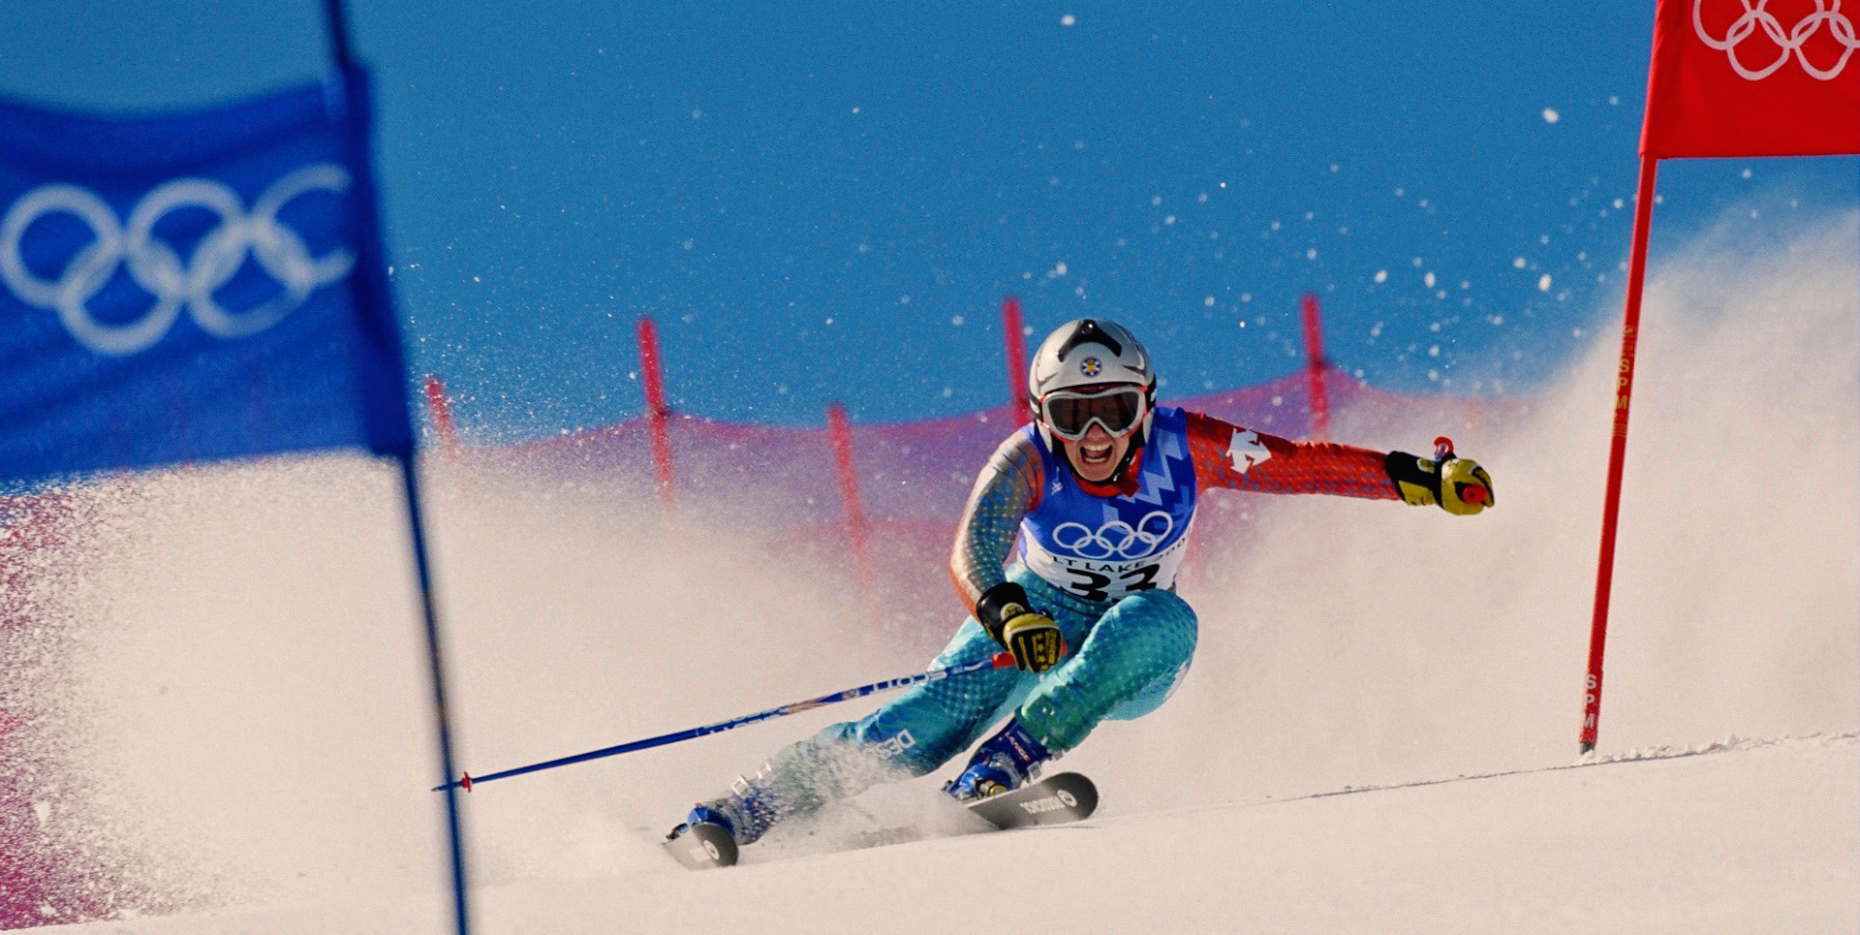 Giant Slalom, Park City, Salt Lake City Olympics